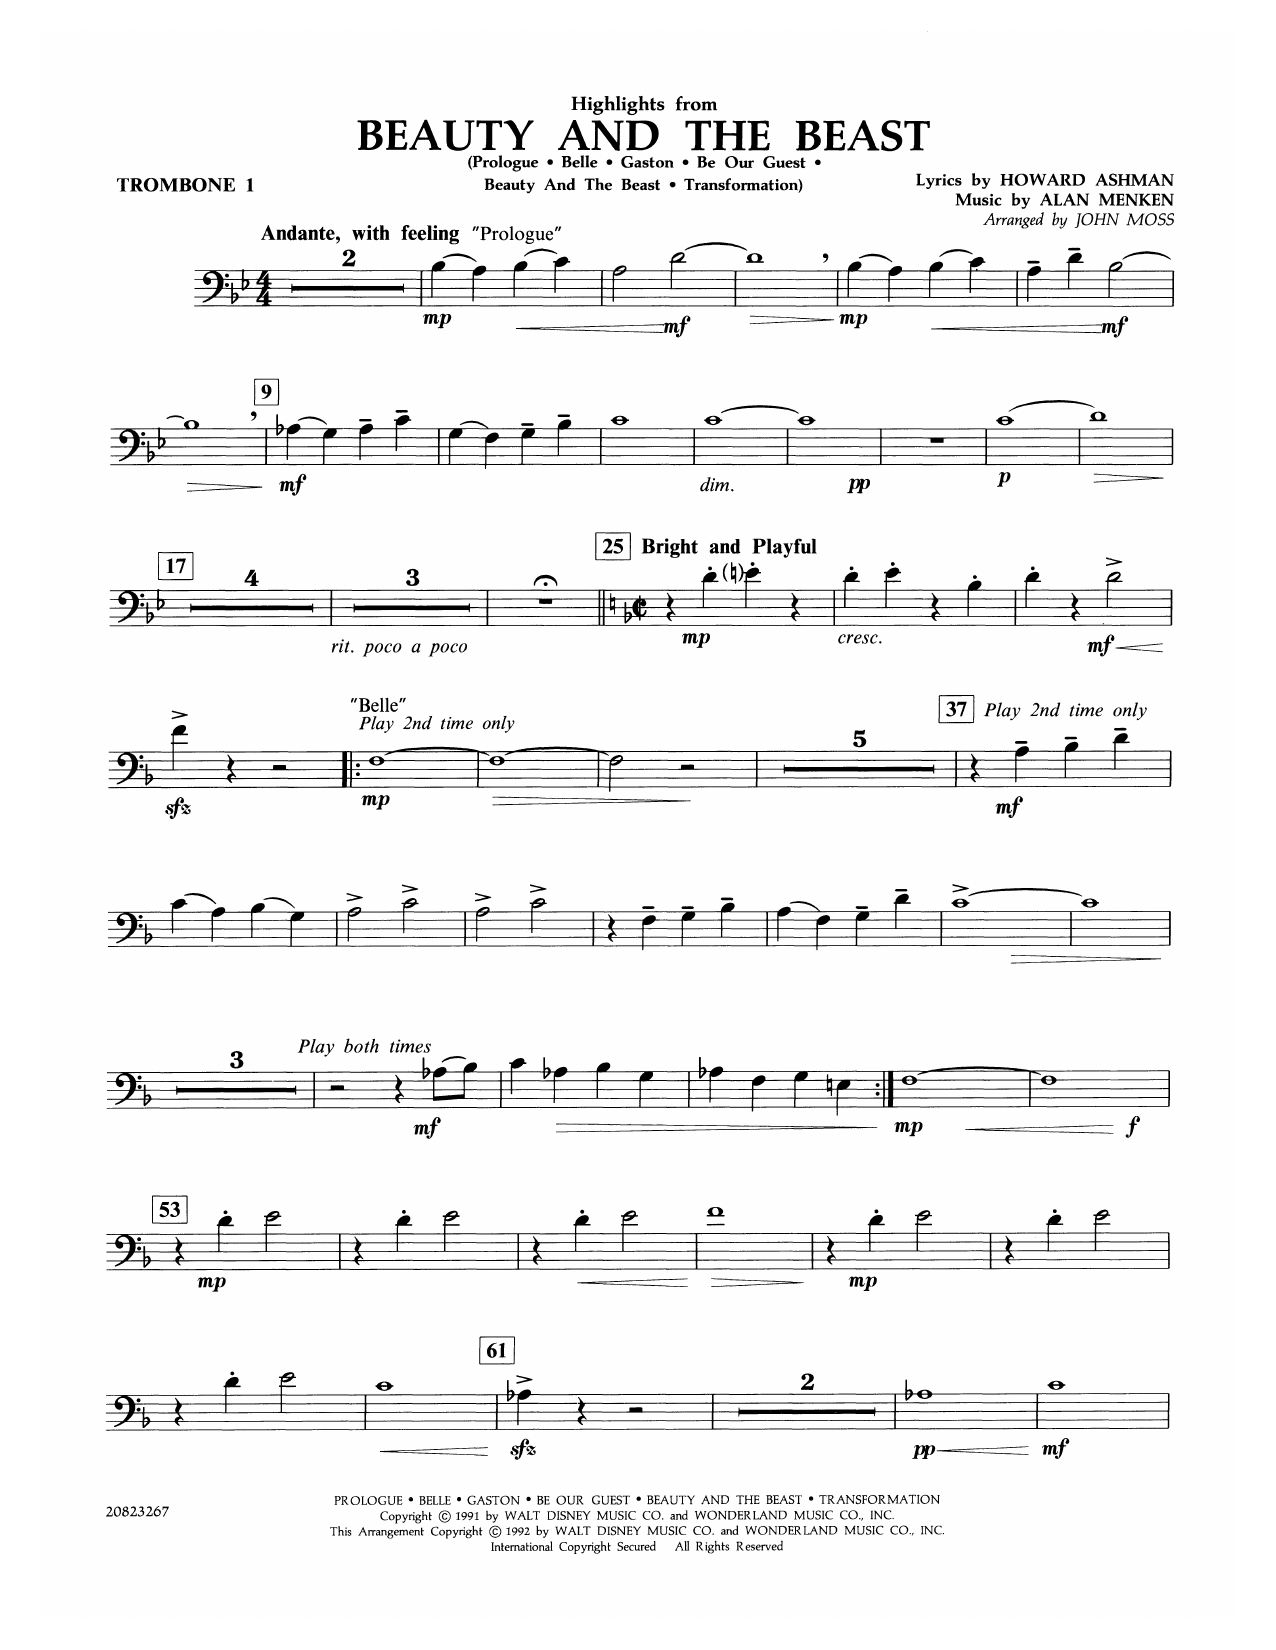 Highlights from Beauty and the Beast - Trombone 1 Sheet Music